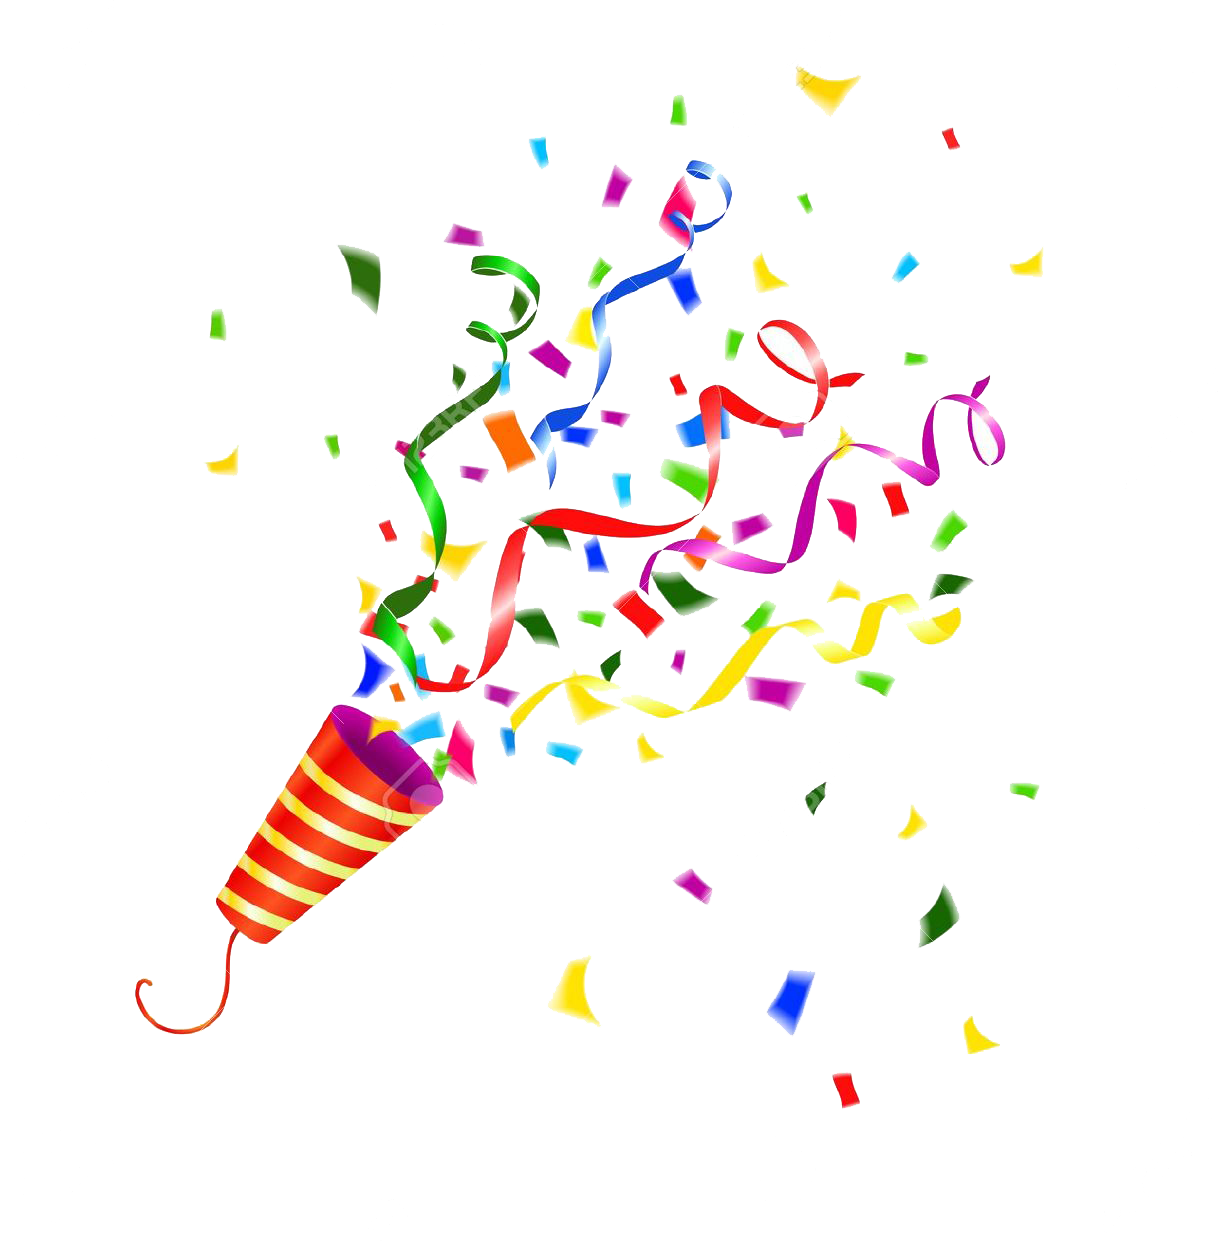 Party popper stock photography. Streamers clipart confetti explosion